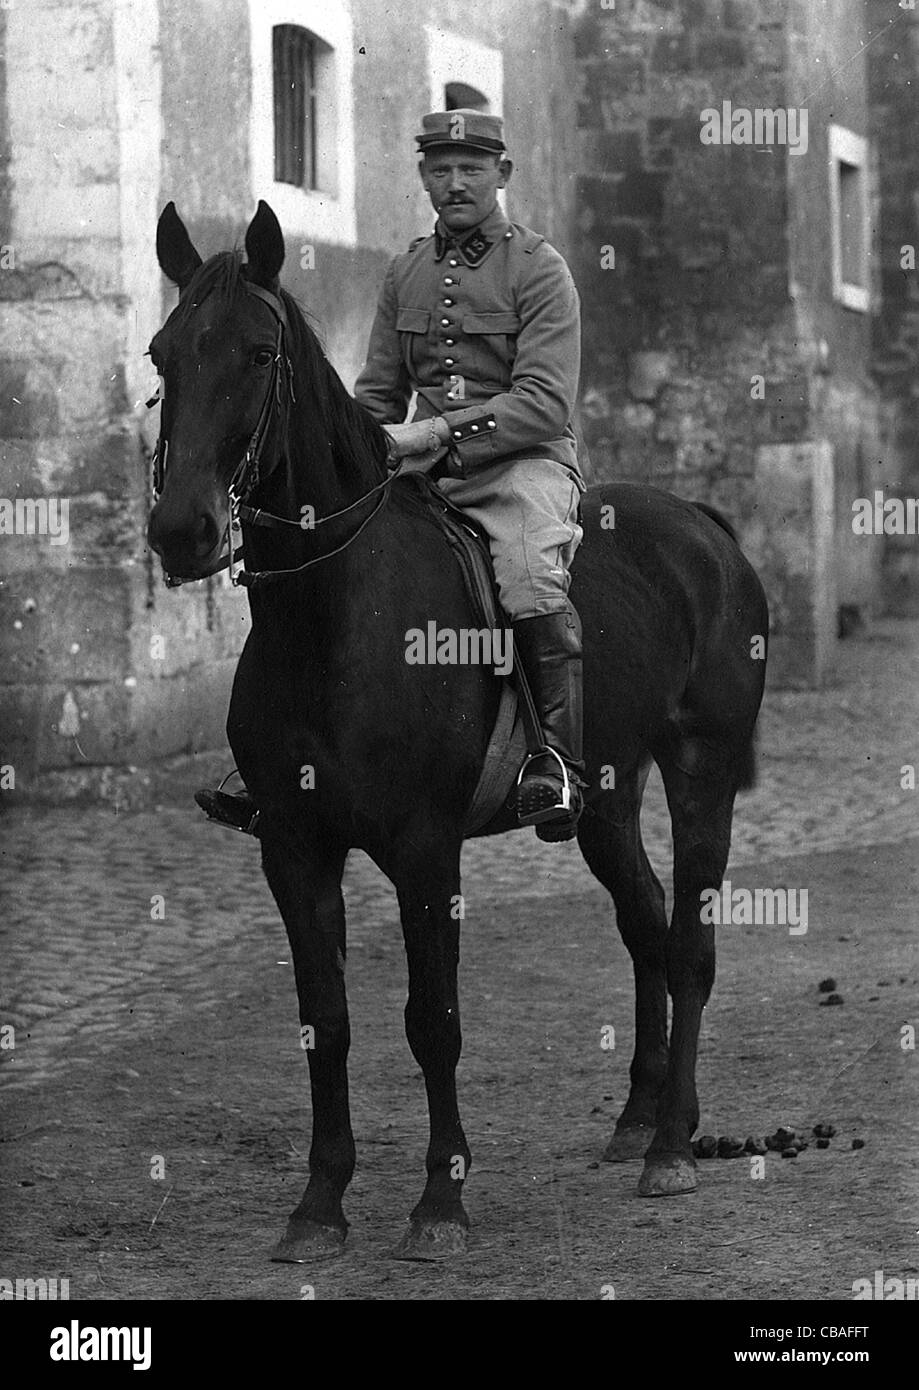 A French mounted trooper of the Great War. - Stock Image